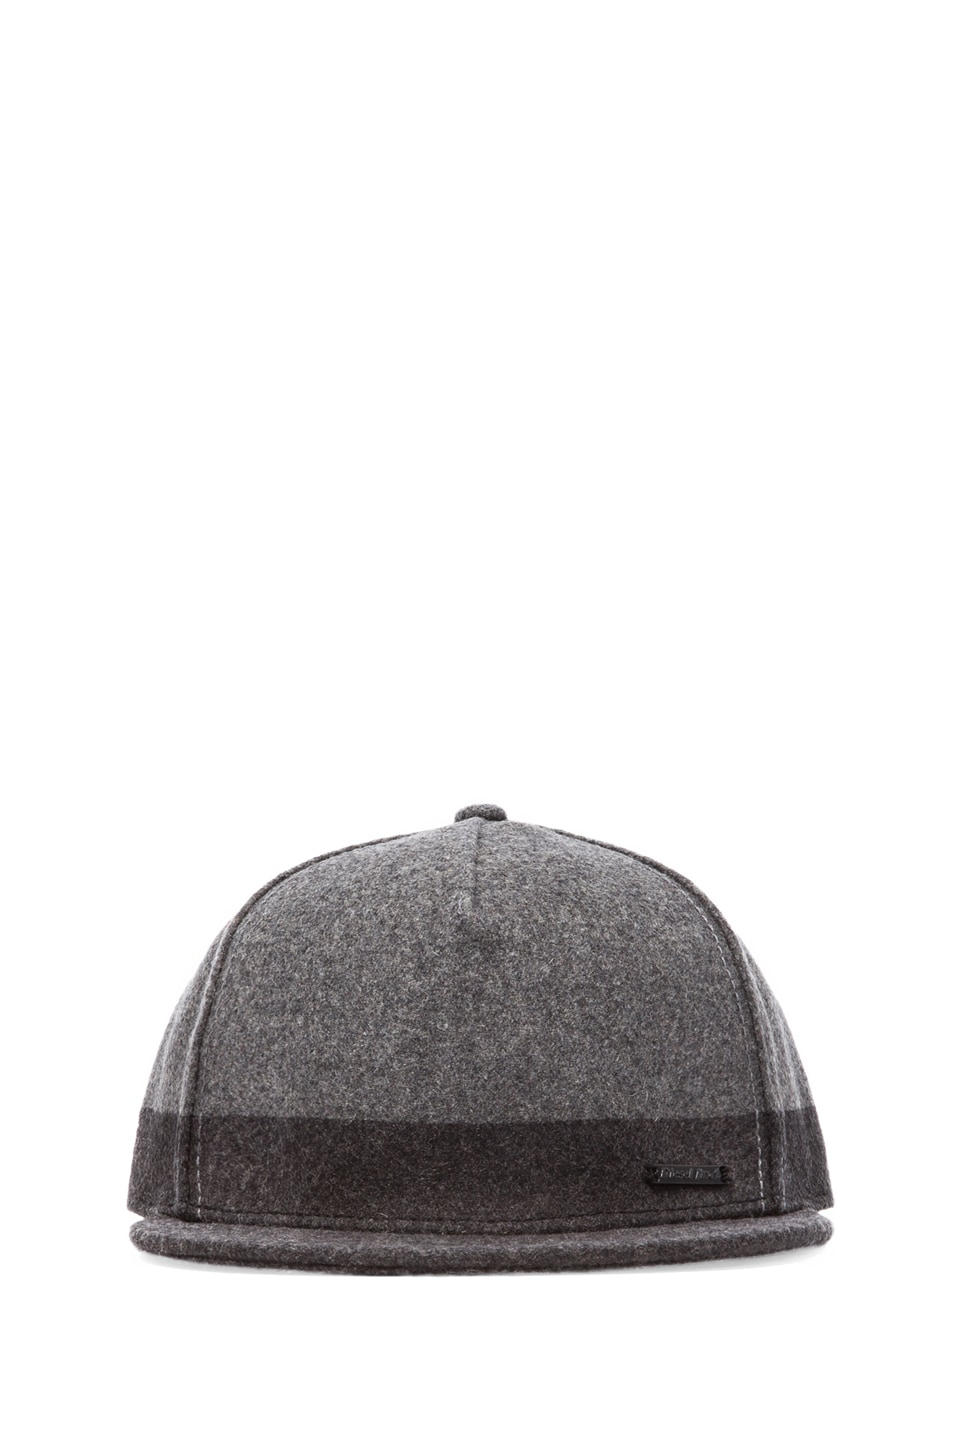 Diesel Chanthayer Baseball Hat in Cold Stone